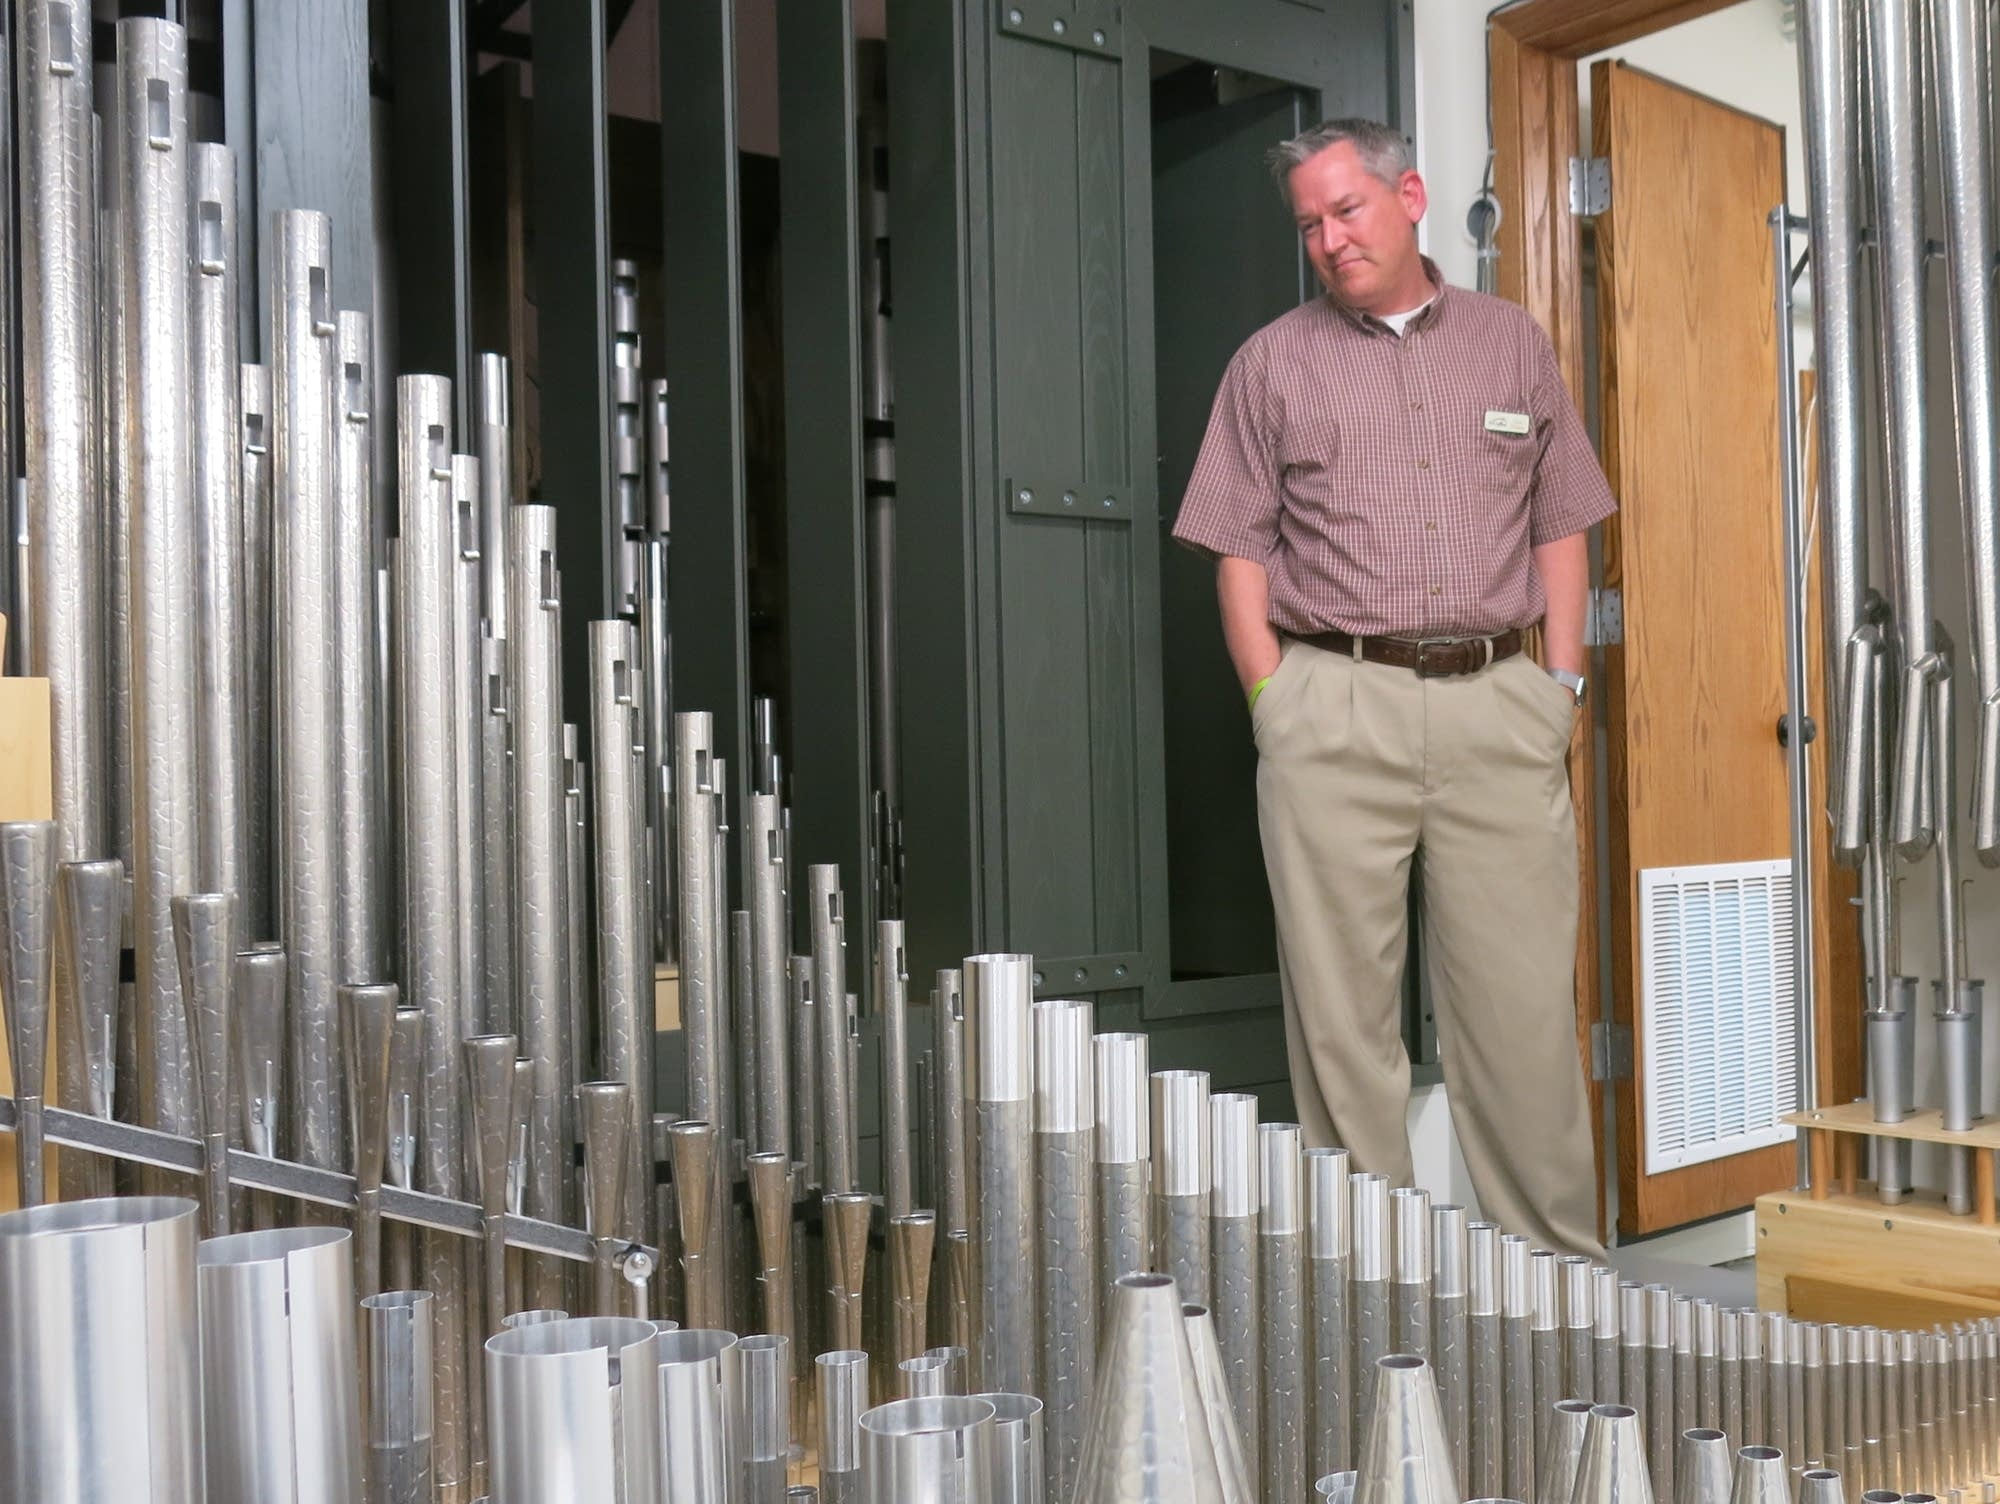 Pastor Corey Fuhrman walks through the custom pipe organ.